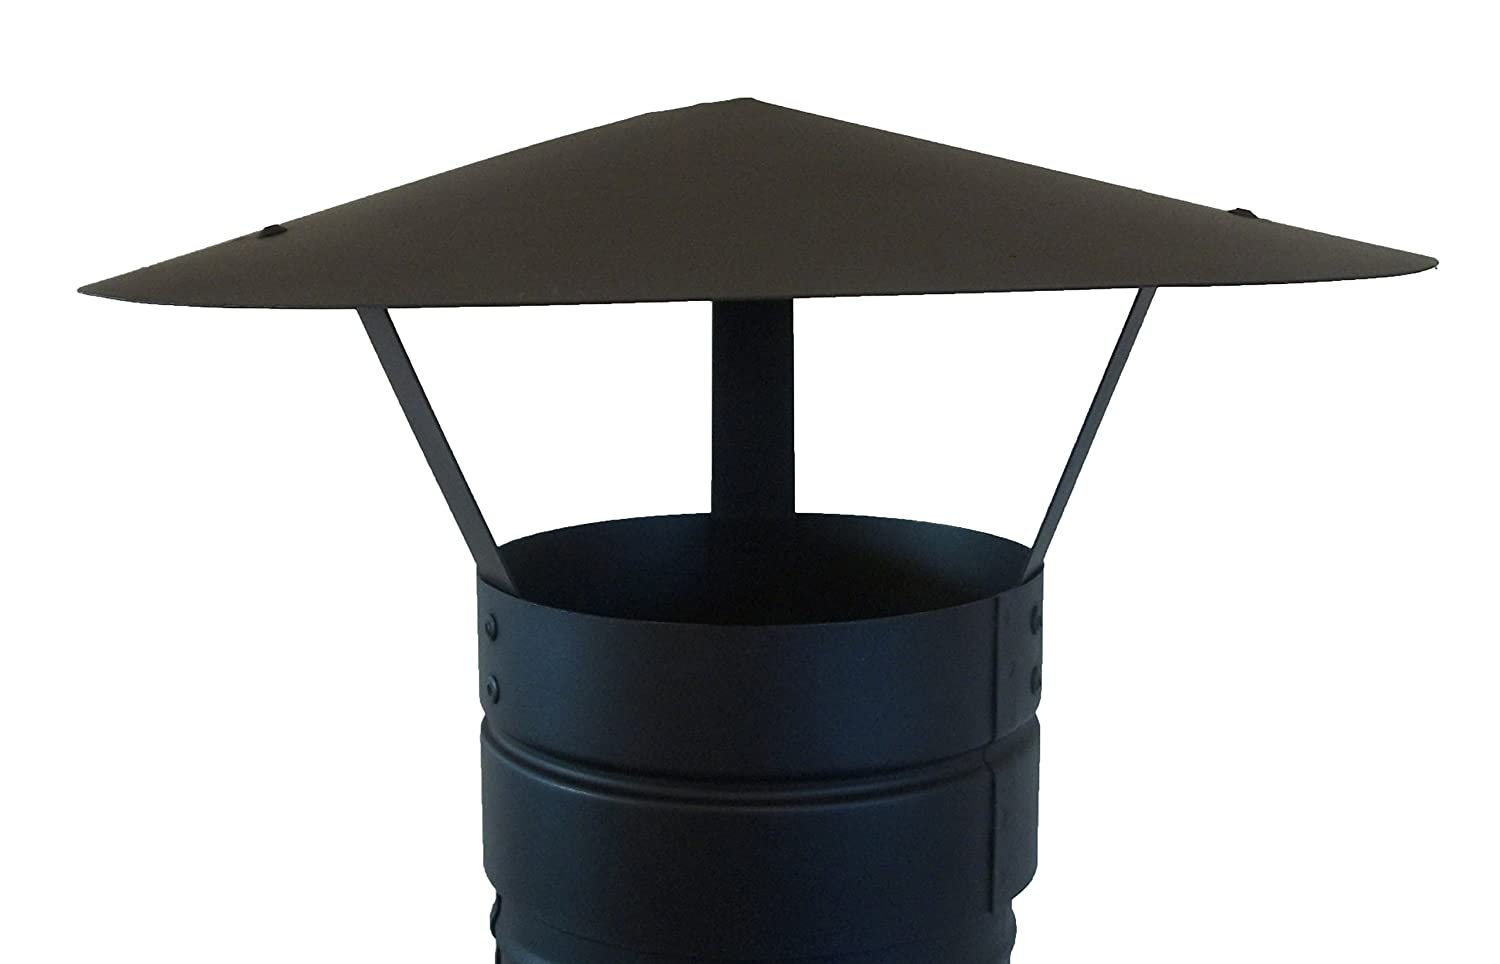 FOXY METAL FABRICATION CHIMNEY CAP,RAIN CAP,CHIMNEY COWL TO FIT 3''/75MM FLUE PIPE/STOVE PIPE